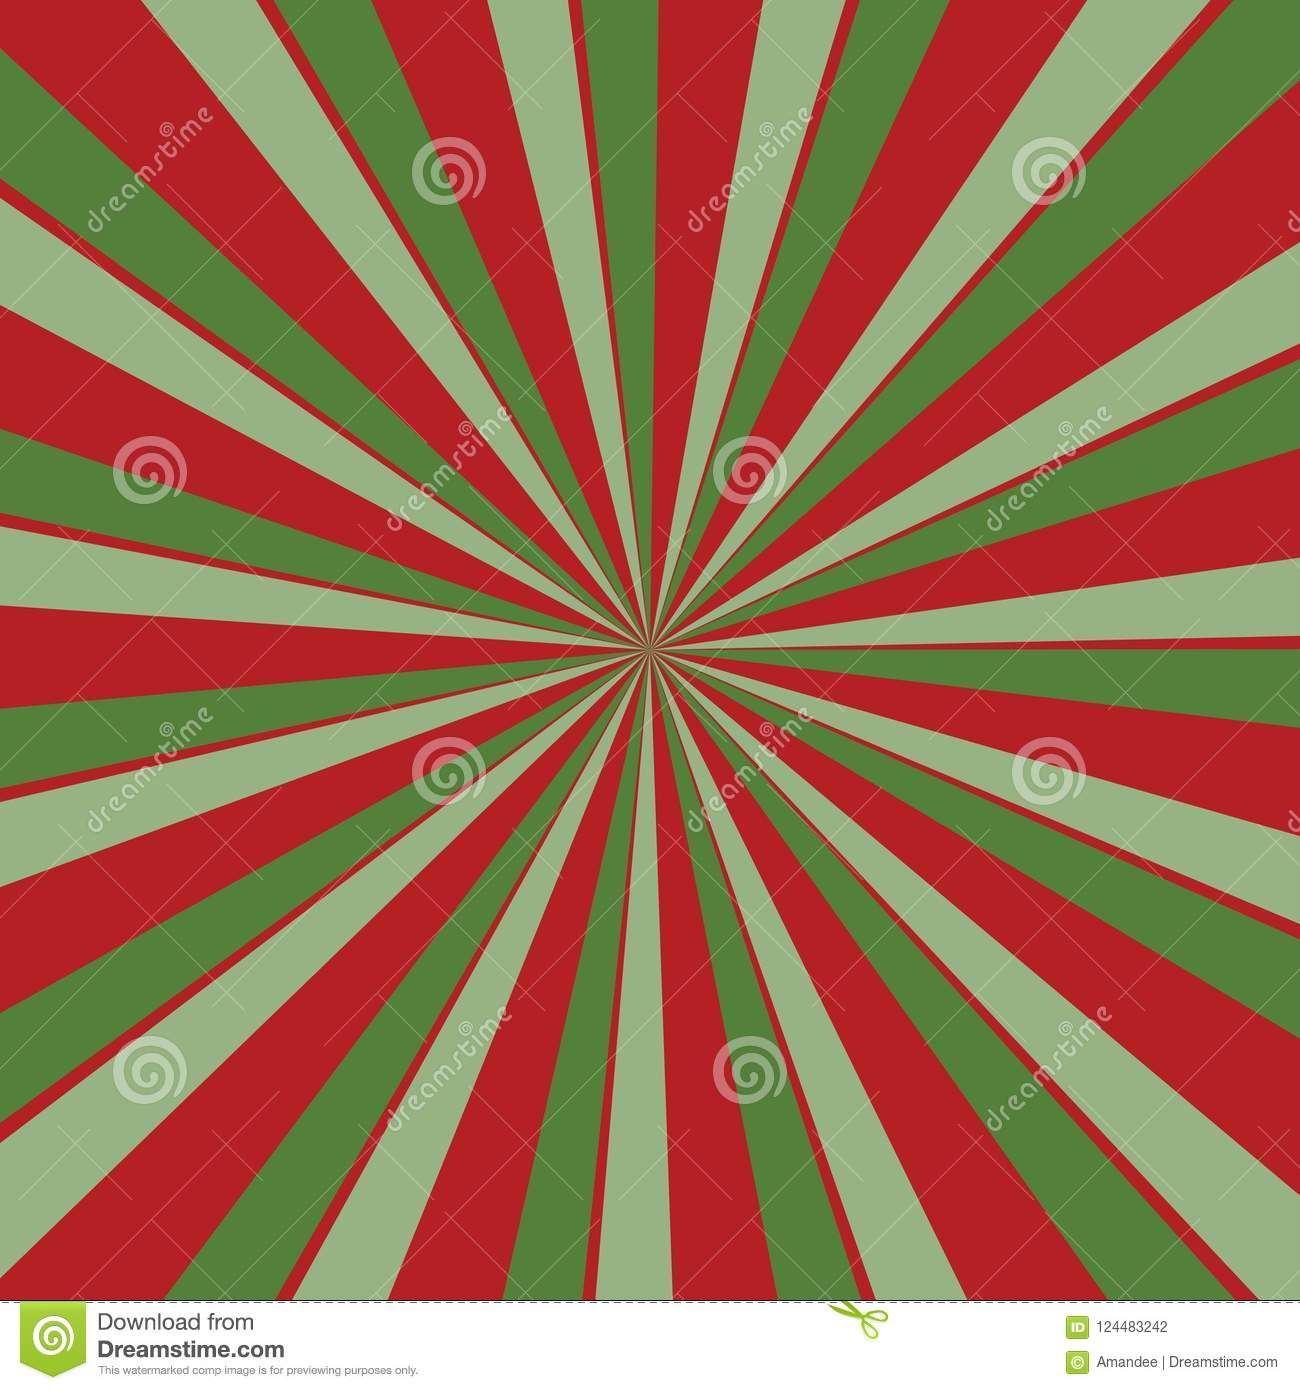 download retro red and green sunburst background in christmas colors with radial striped pattern stock vector - Why Are Red And Green Christmas Colors